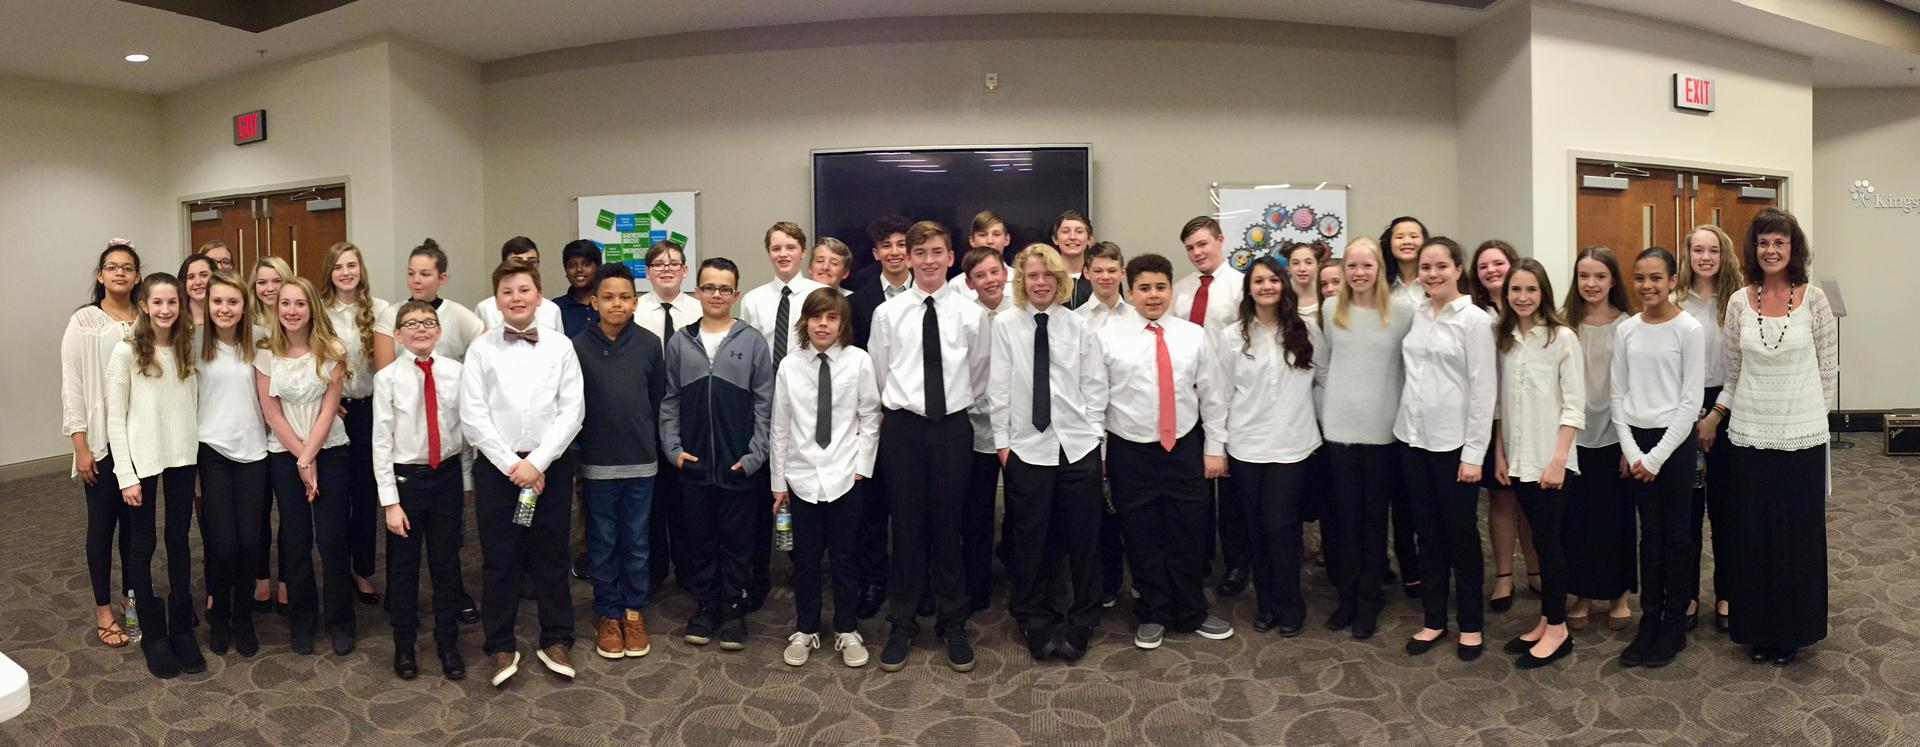 RNR Honor Choir